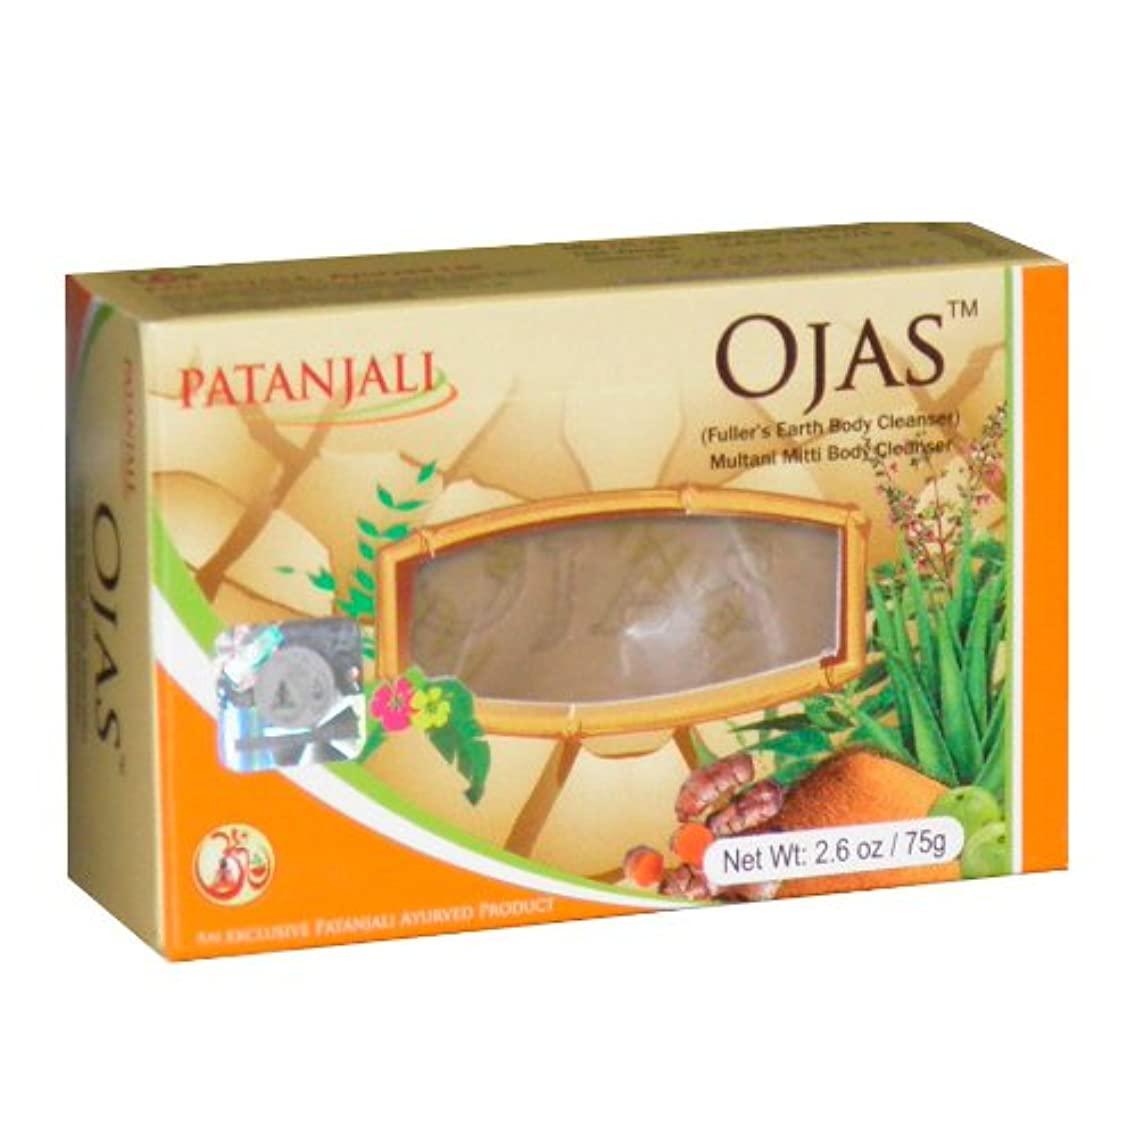 Natural Ayurvedic Soap with Herb Oils and Multani Clay 2x75g (2x2.6oz) From India